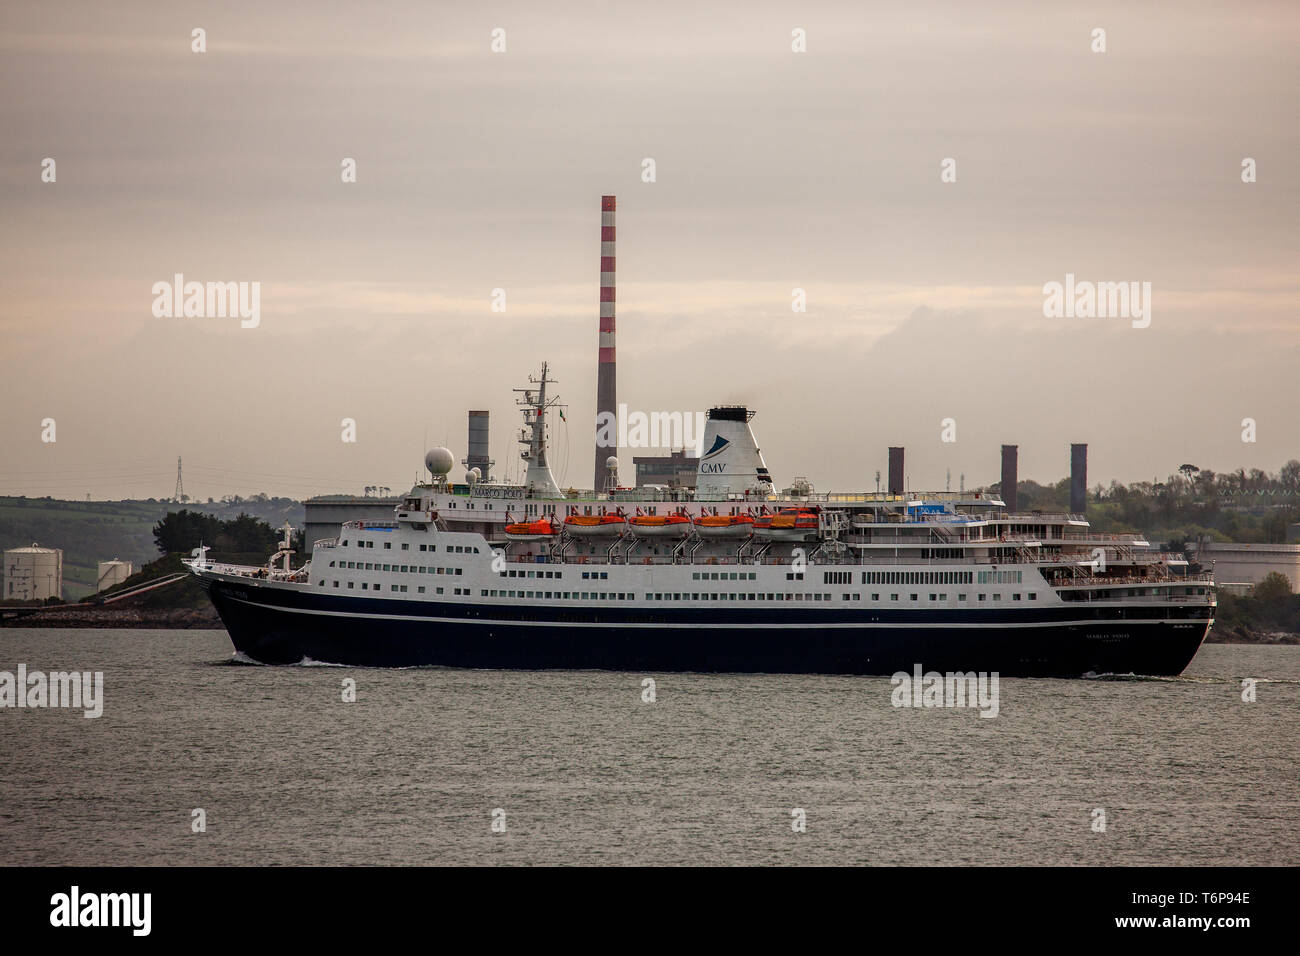 Crosshaven, Cork, Ireland. 02nd May, 2019. On her way to visit the historic town of Cobh cruise ship Marco Polo steams past the oil refinery in Whitegate and the ESB generating station in Aghada, Co. Cork, Ireland. Credit: David Creedon/Alamy Live News - Stock Image